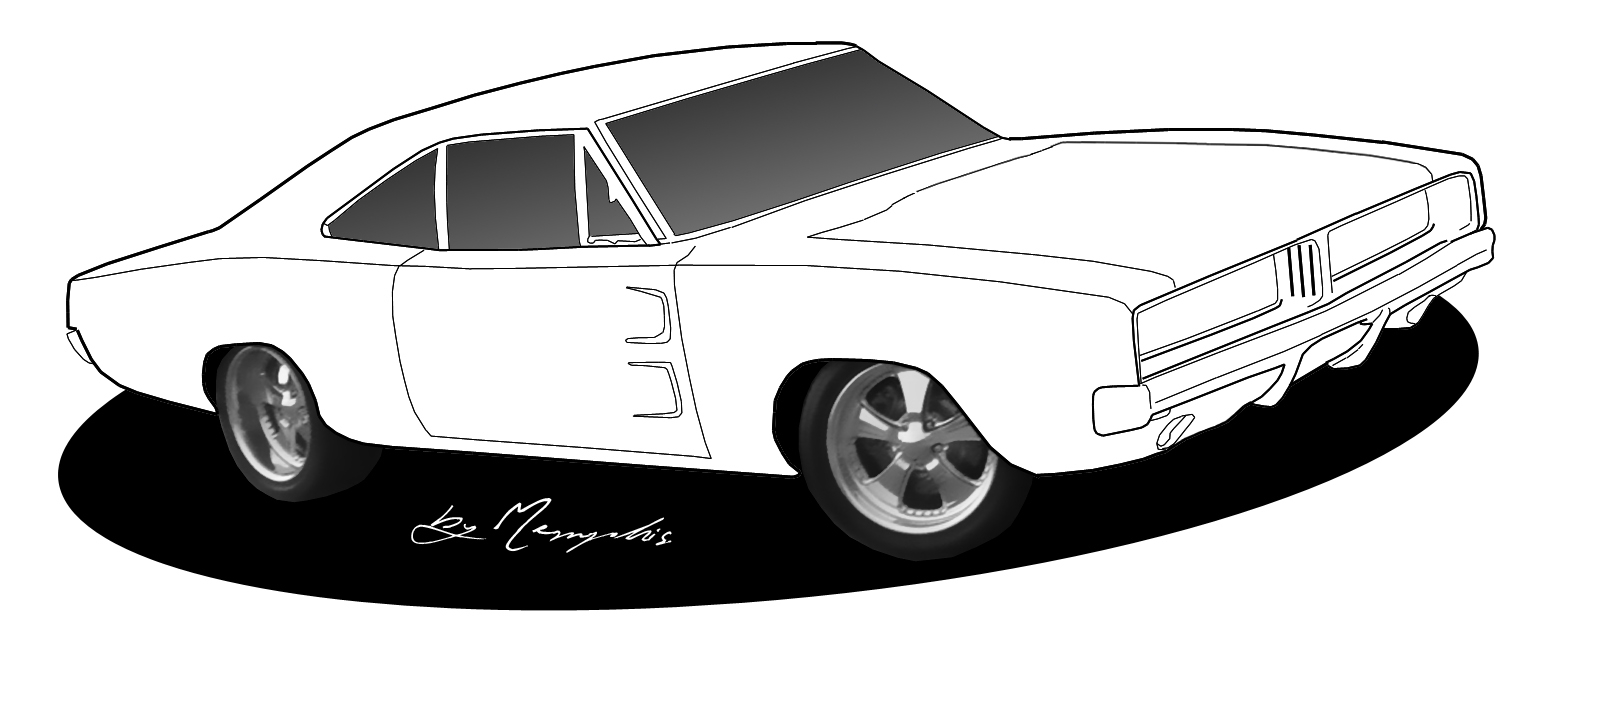 Muscle Car Coloring Pages Coloring Pages Gallery Of Coloring Books and Pages Simple Hot Rod Coloring Pages Pinterest Printable